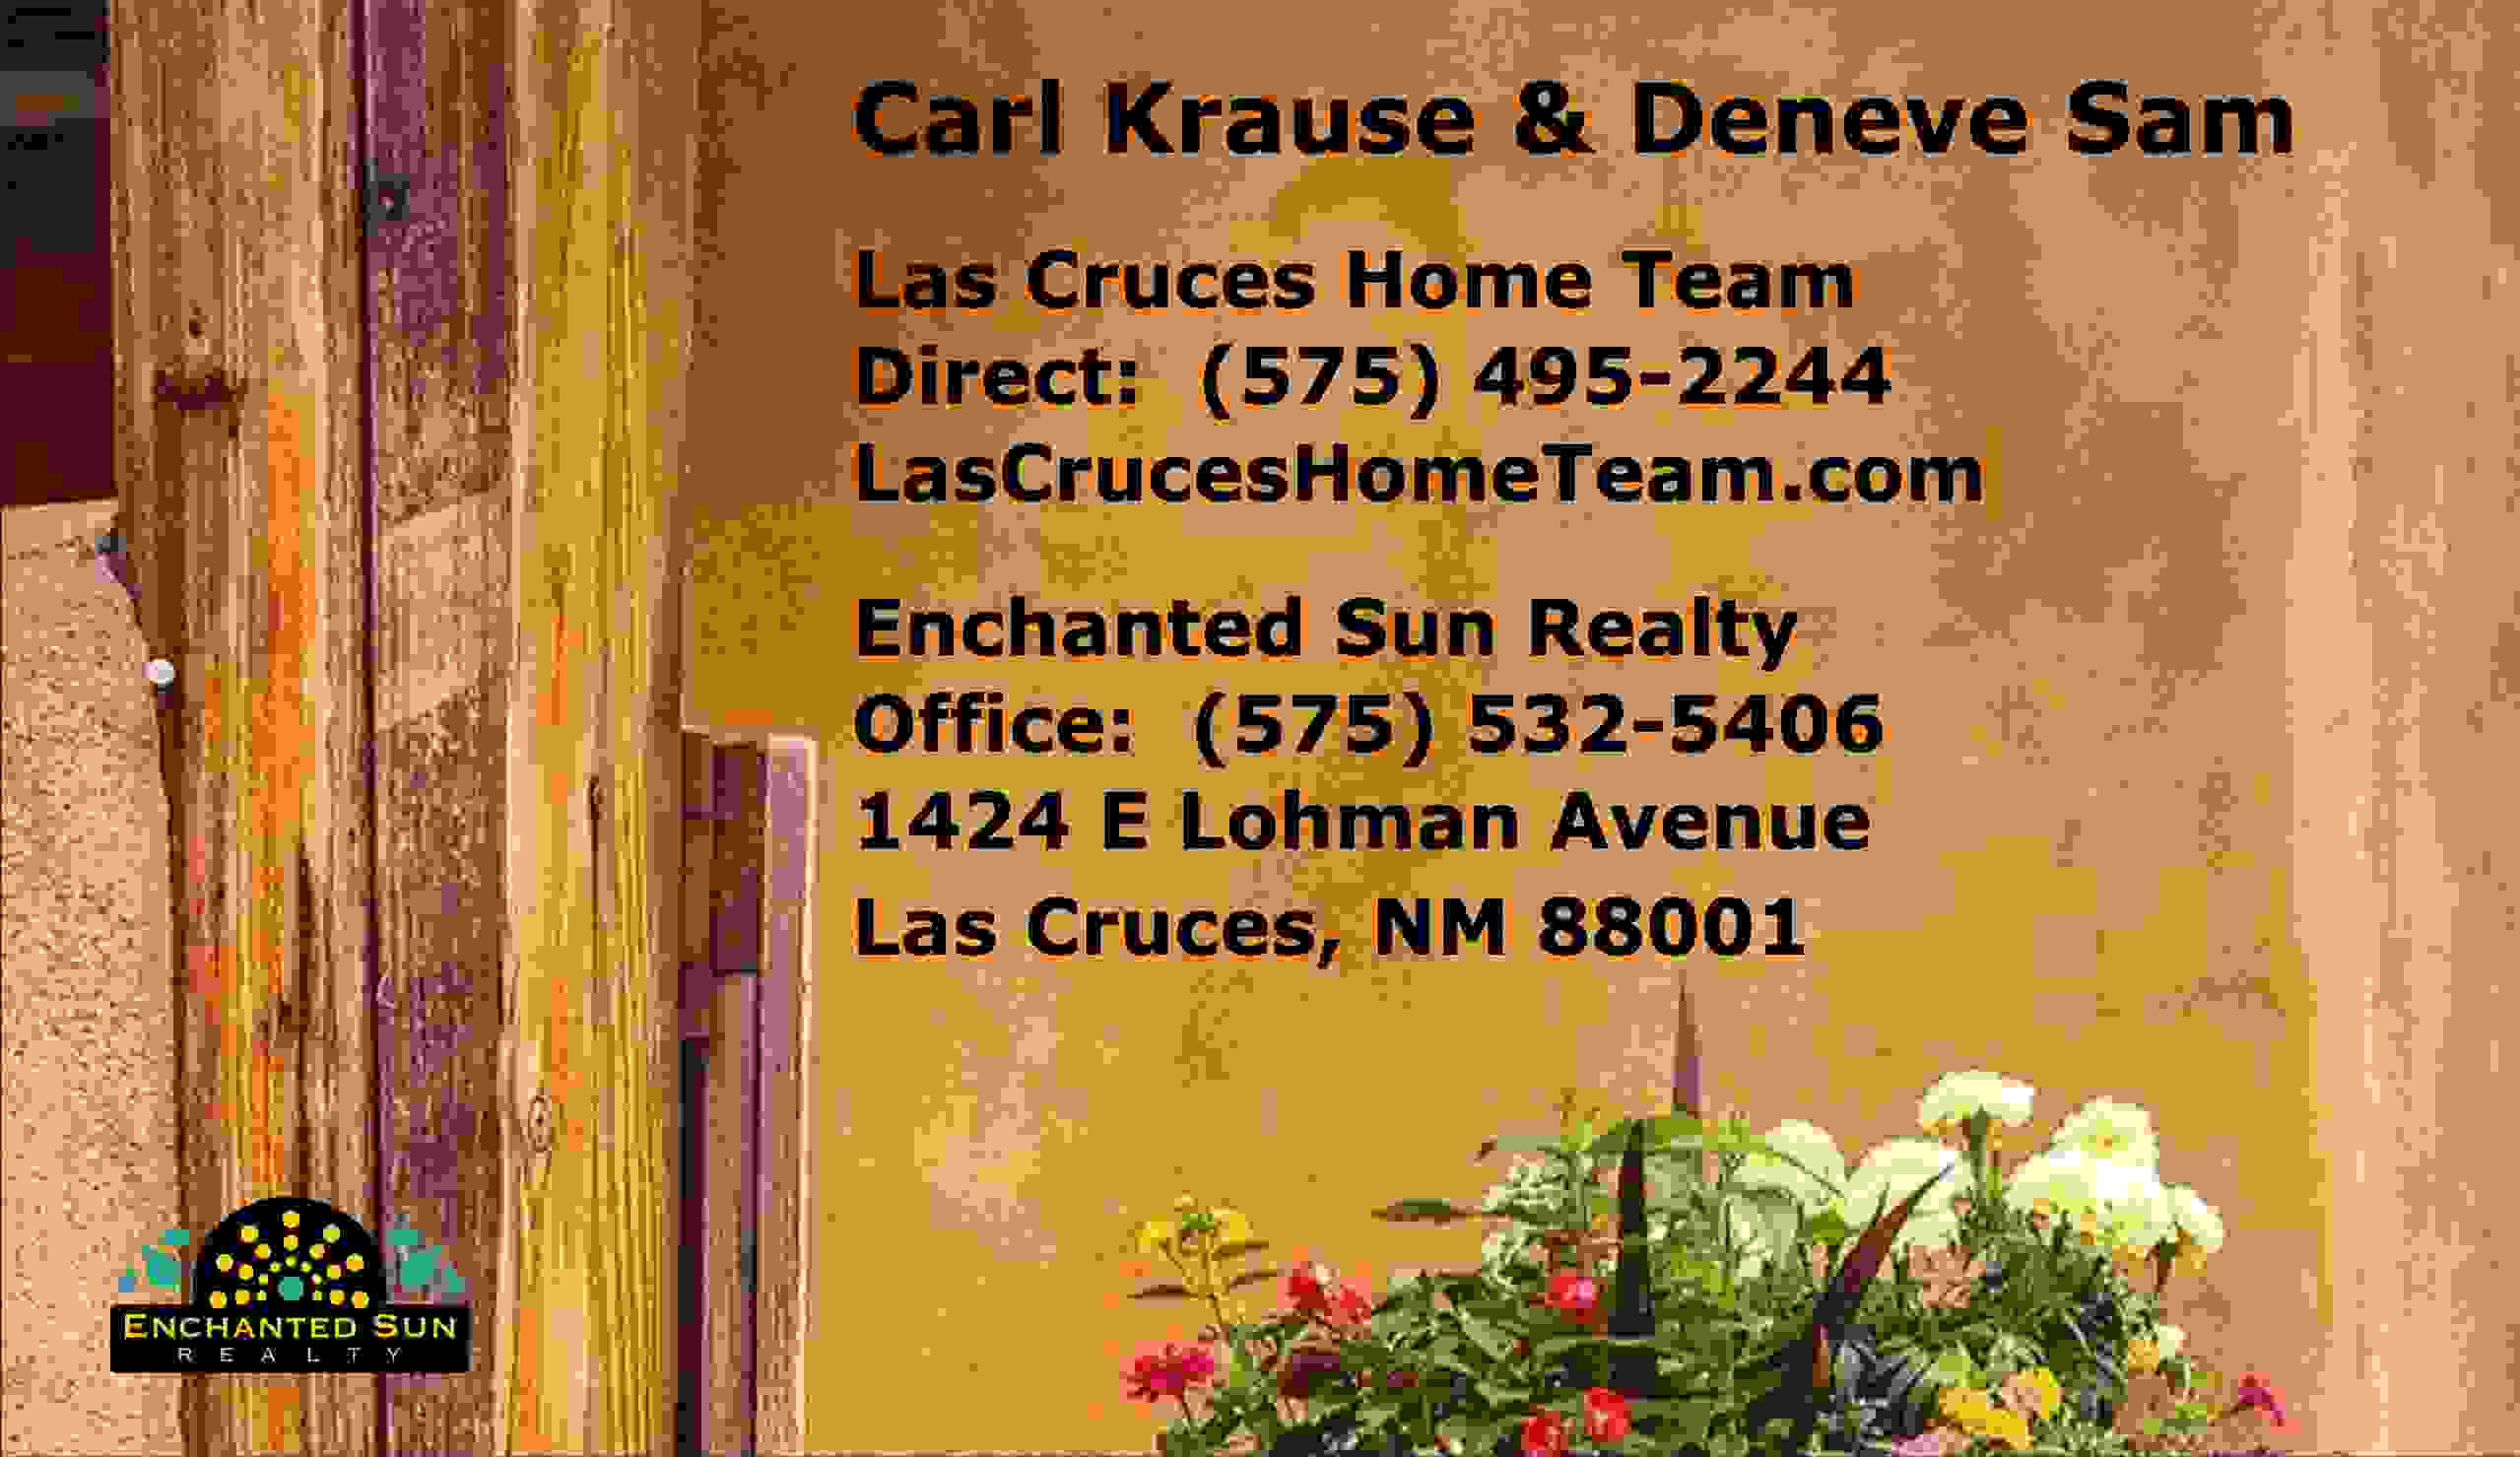 Contact Carl Krause and Deneve Sam of the Las Cruces Home Team